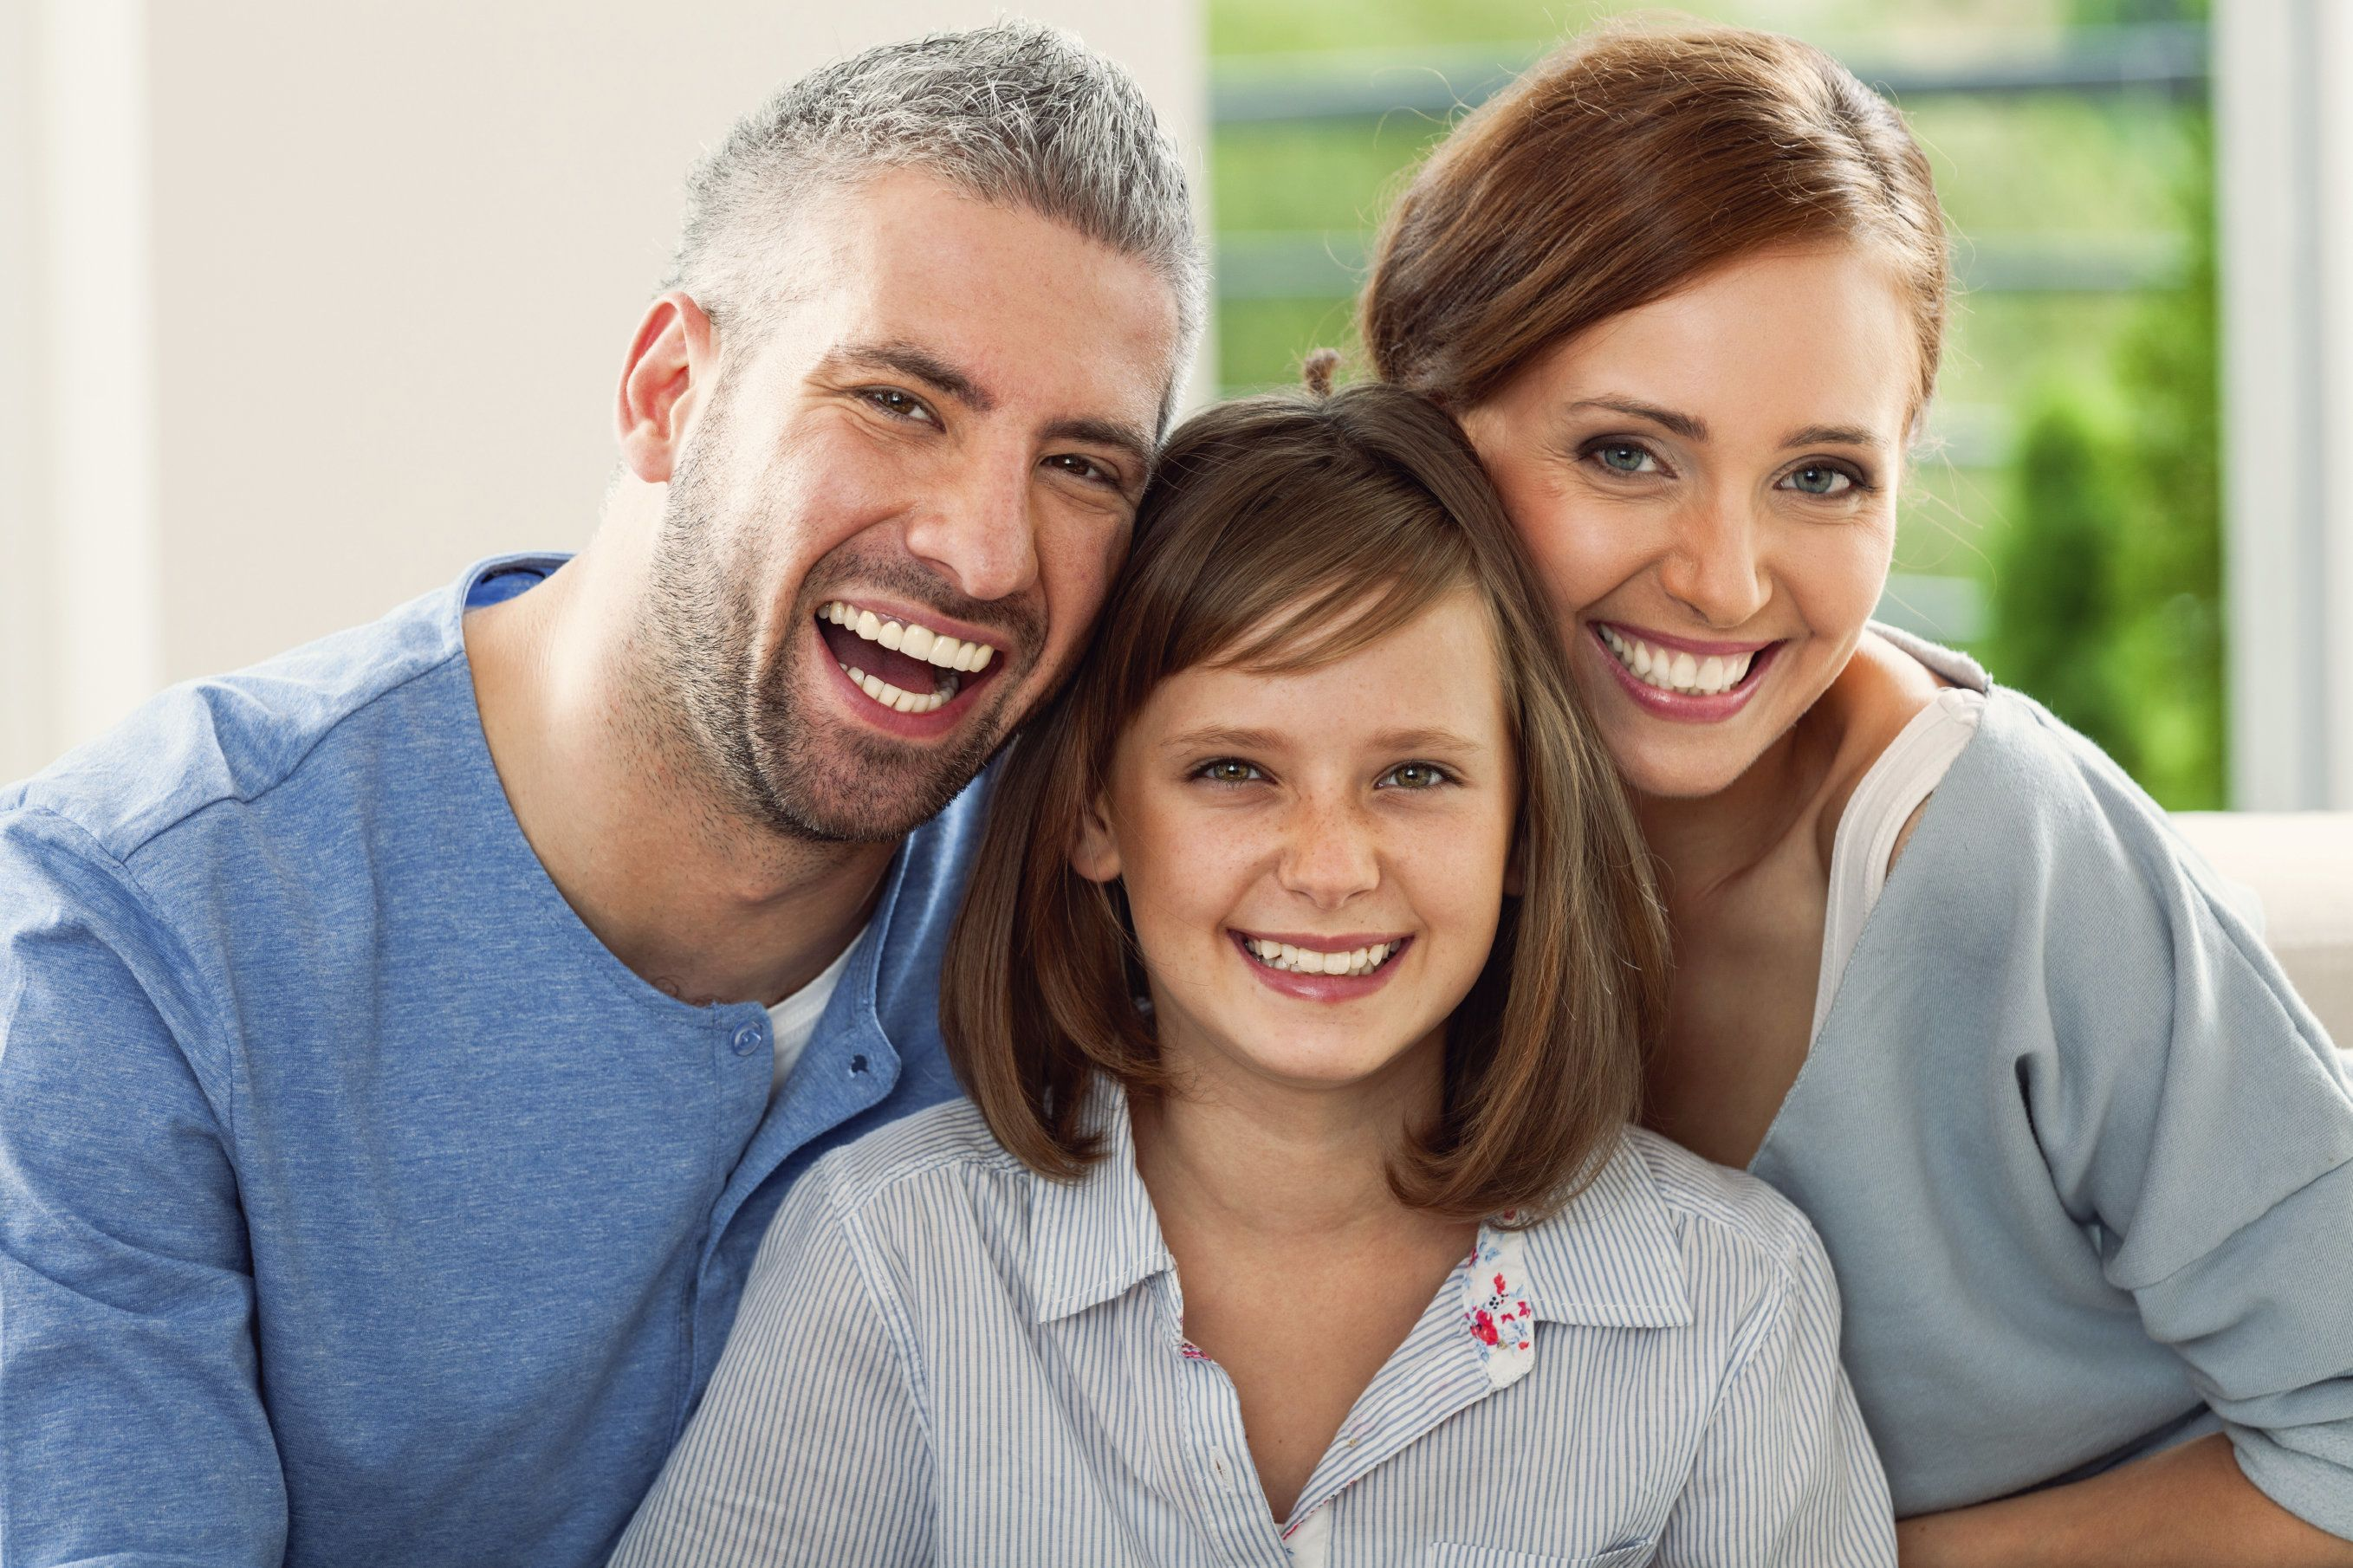 Smiling parents with young girl